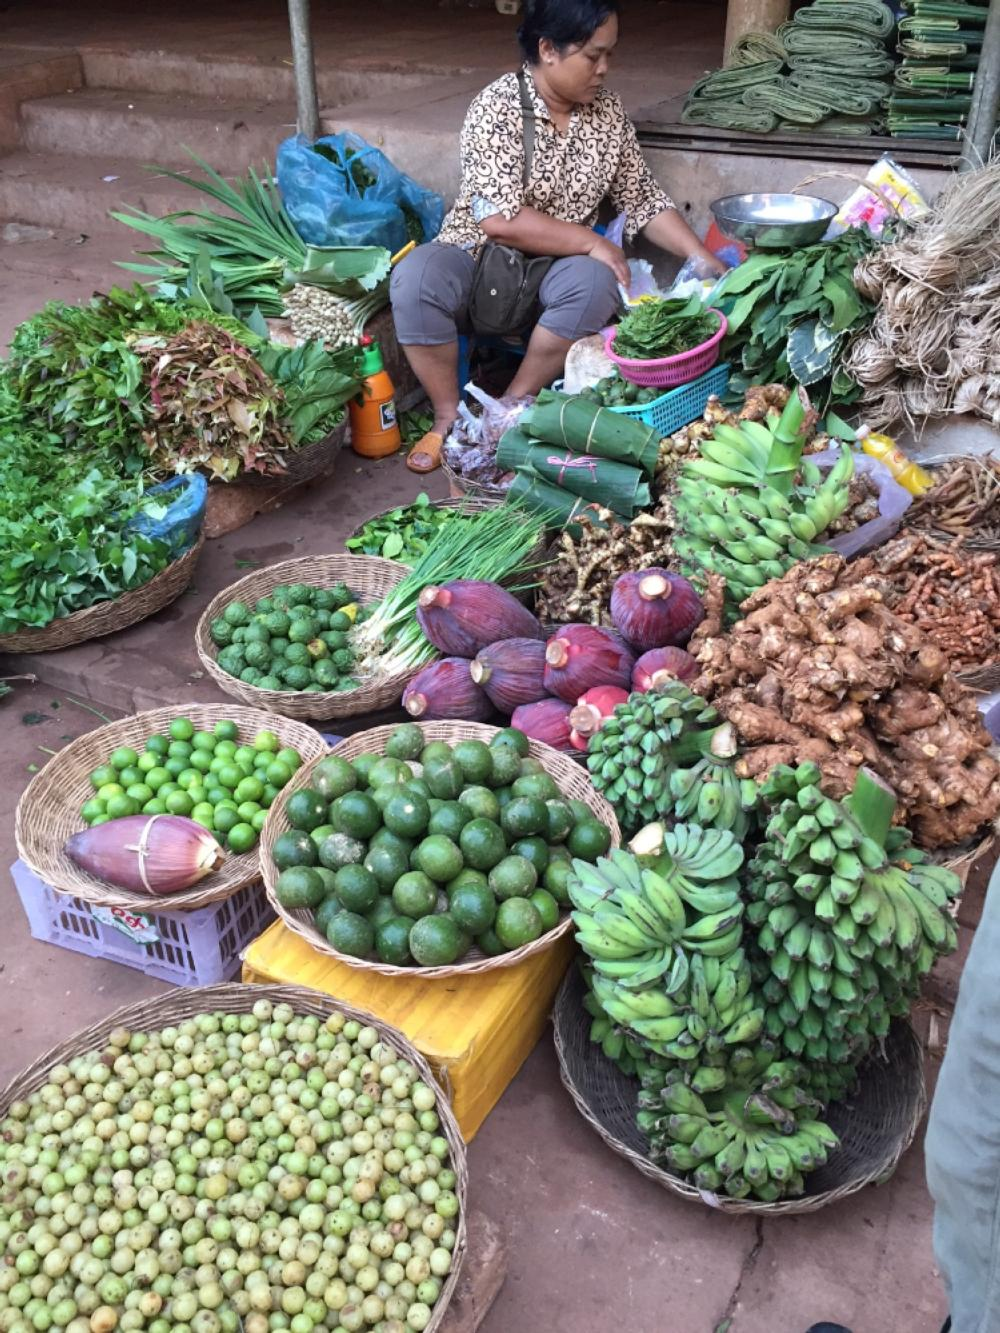 Woman selling vegetables in market in Cambodia